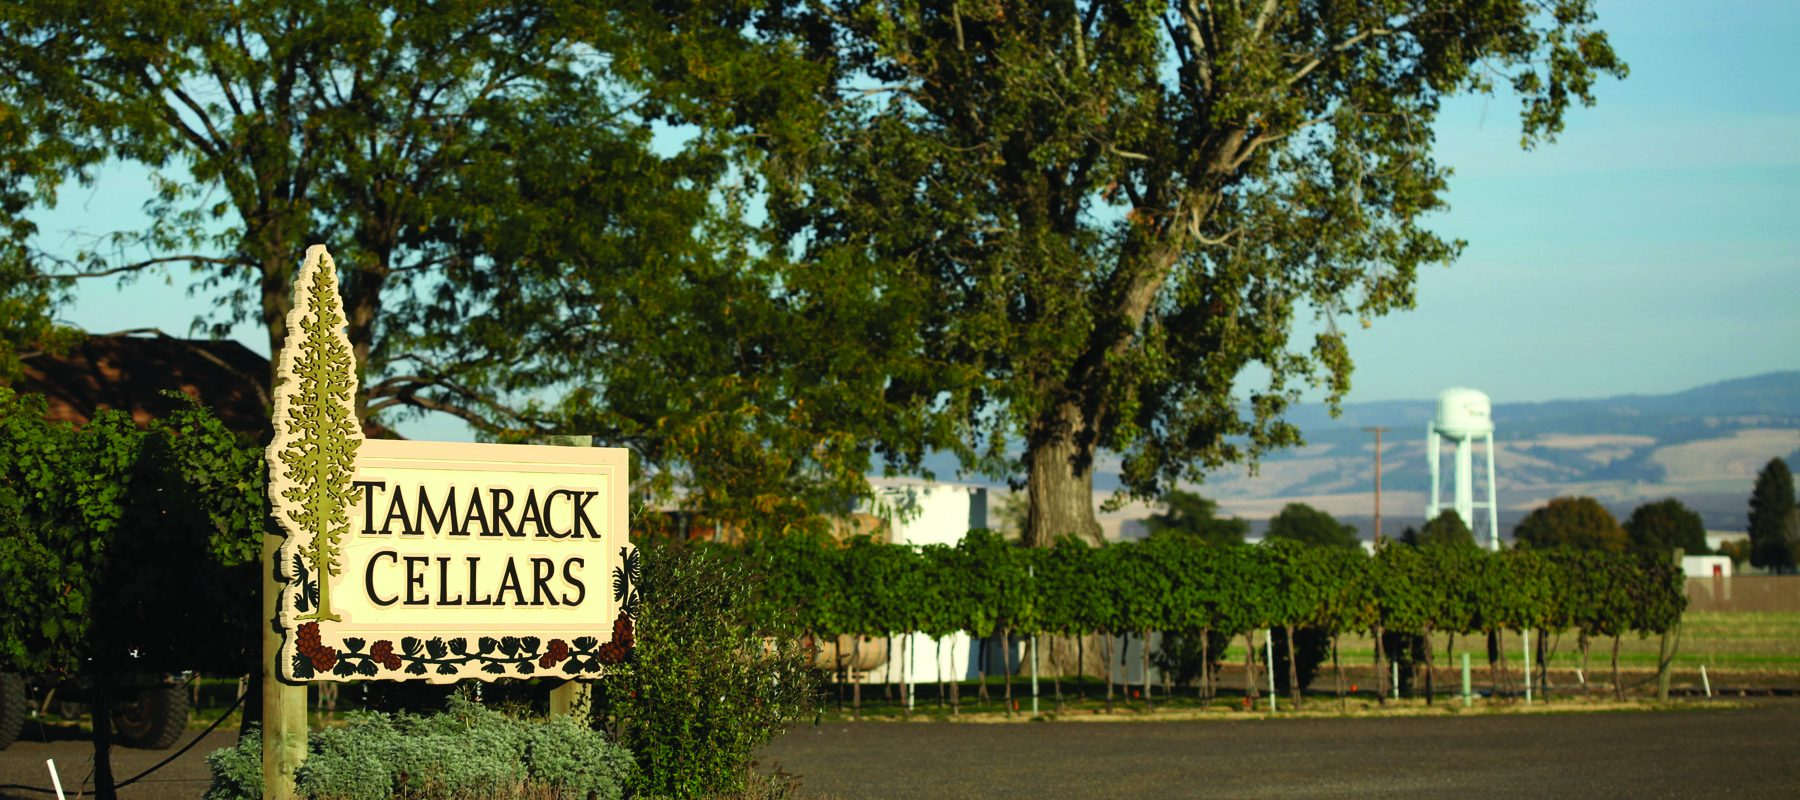 Tamarack Cellars near Richland lodge